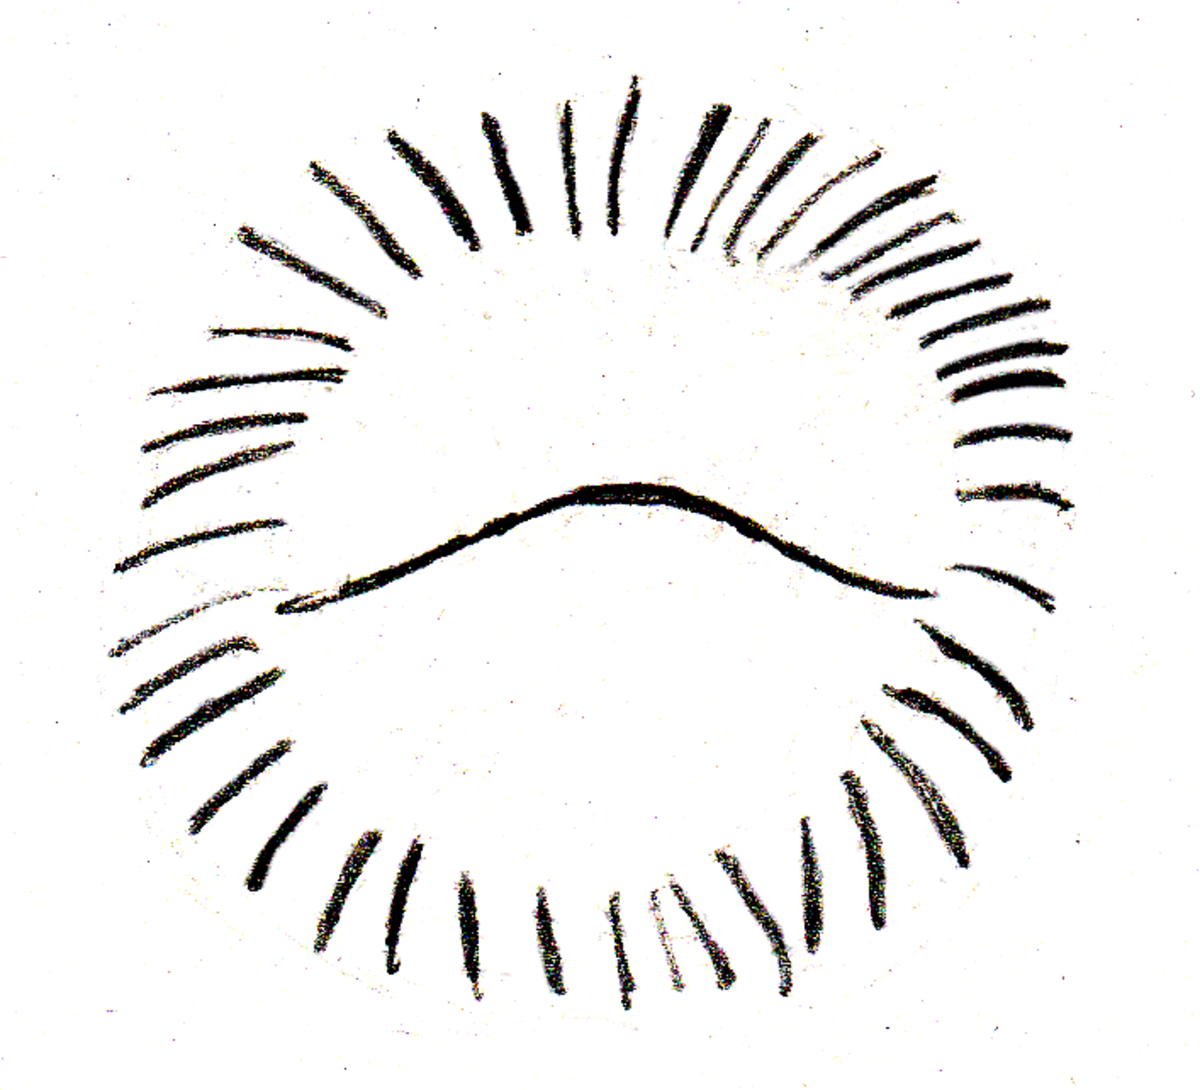 Balled Hedgehog: What you can see of an alarmed hedgehog (that line in the middle is what the face, belly, and feet  disappeared into)